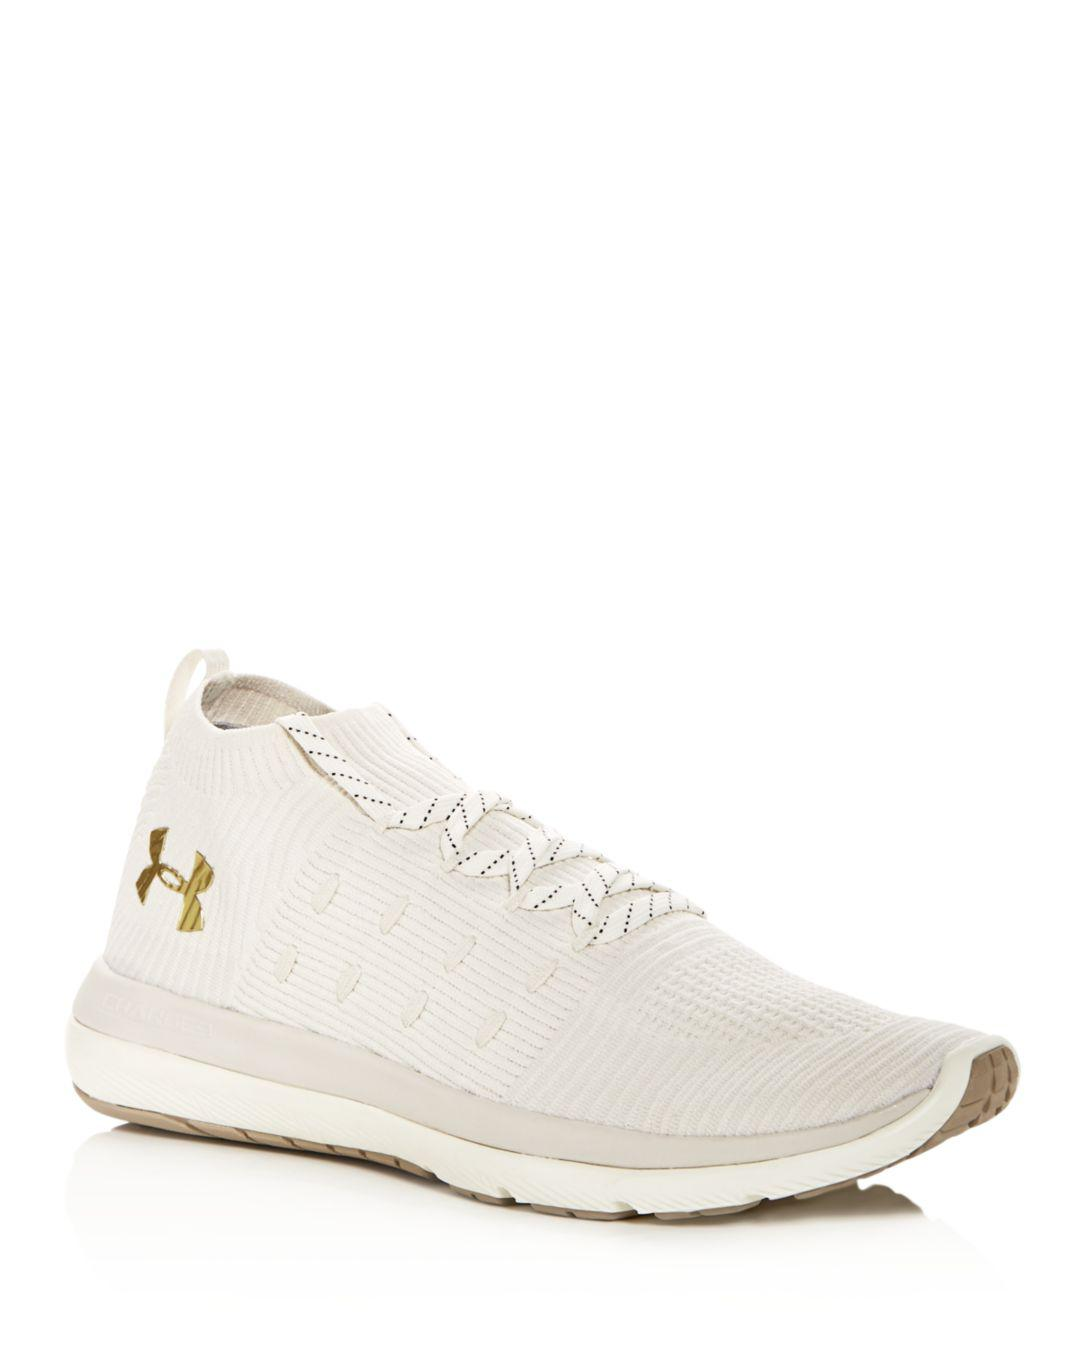 detailed look 603da bd754 Under Armour White Men's Slingflex Rise Knit Mid Top Sneakers for men